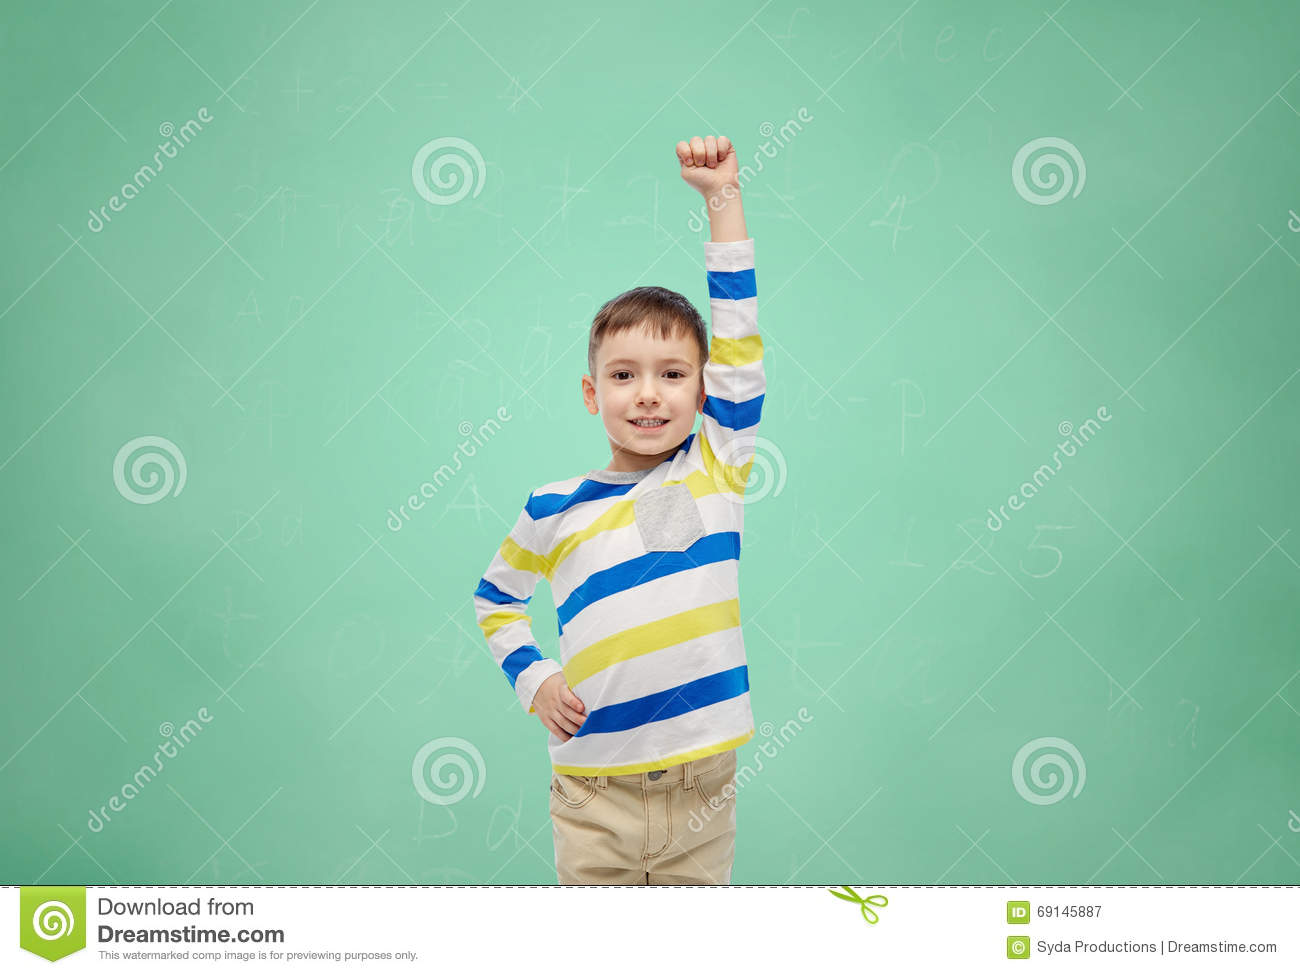 acbddd354f015 Childhood, power, education, gesture and people concept - happy smiling little  boy with raised hand over green school chalk board background